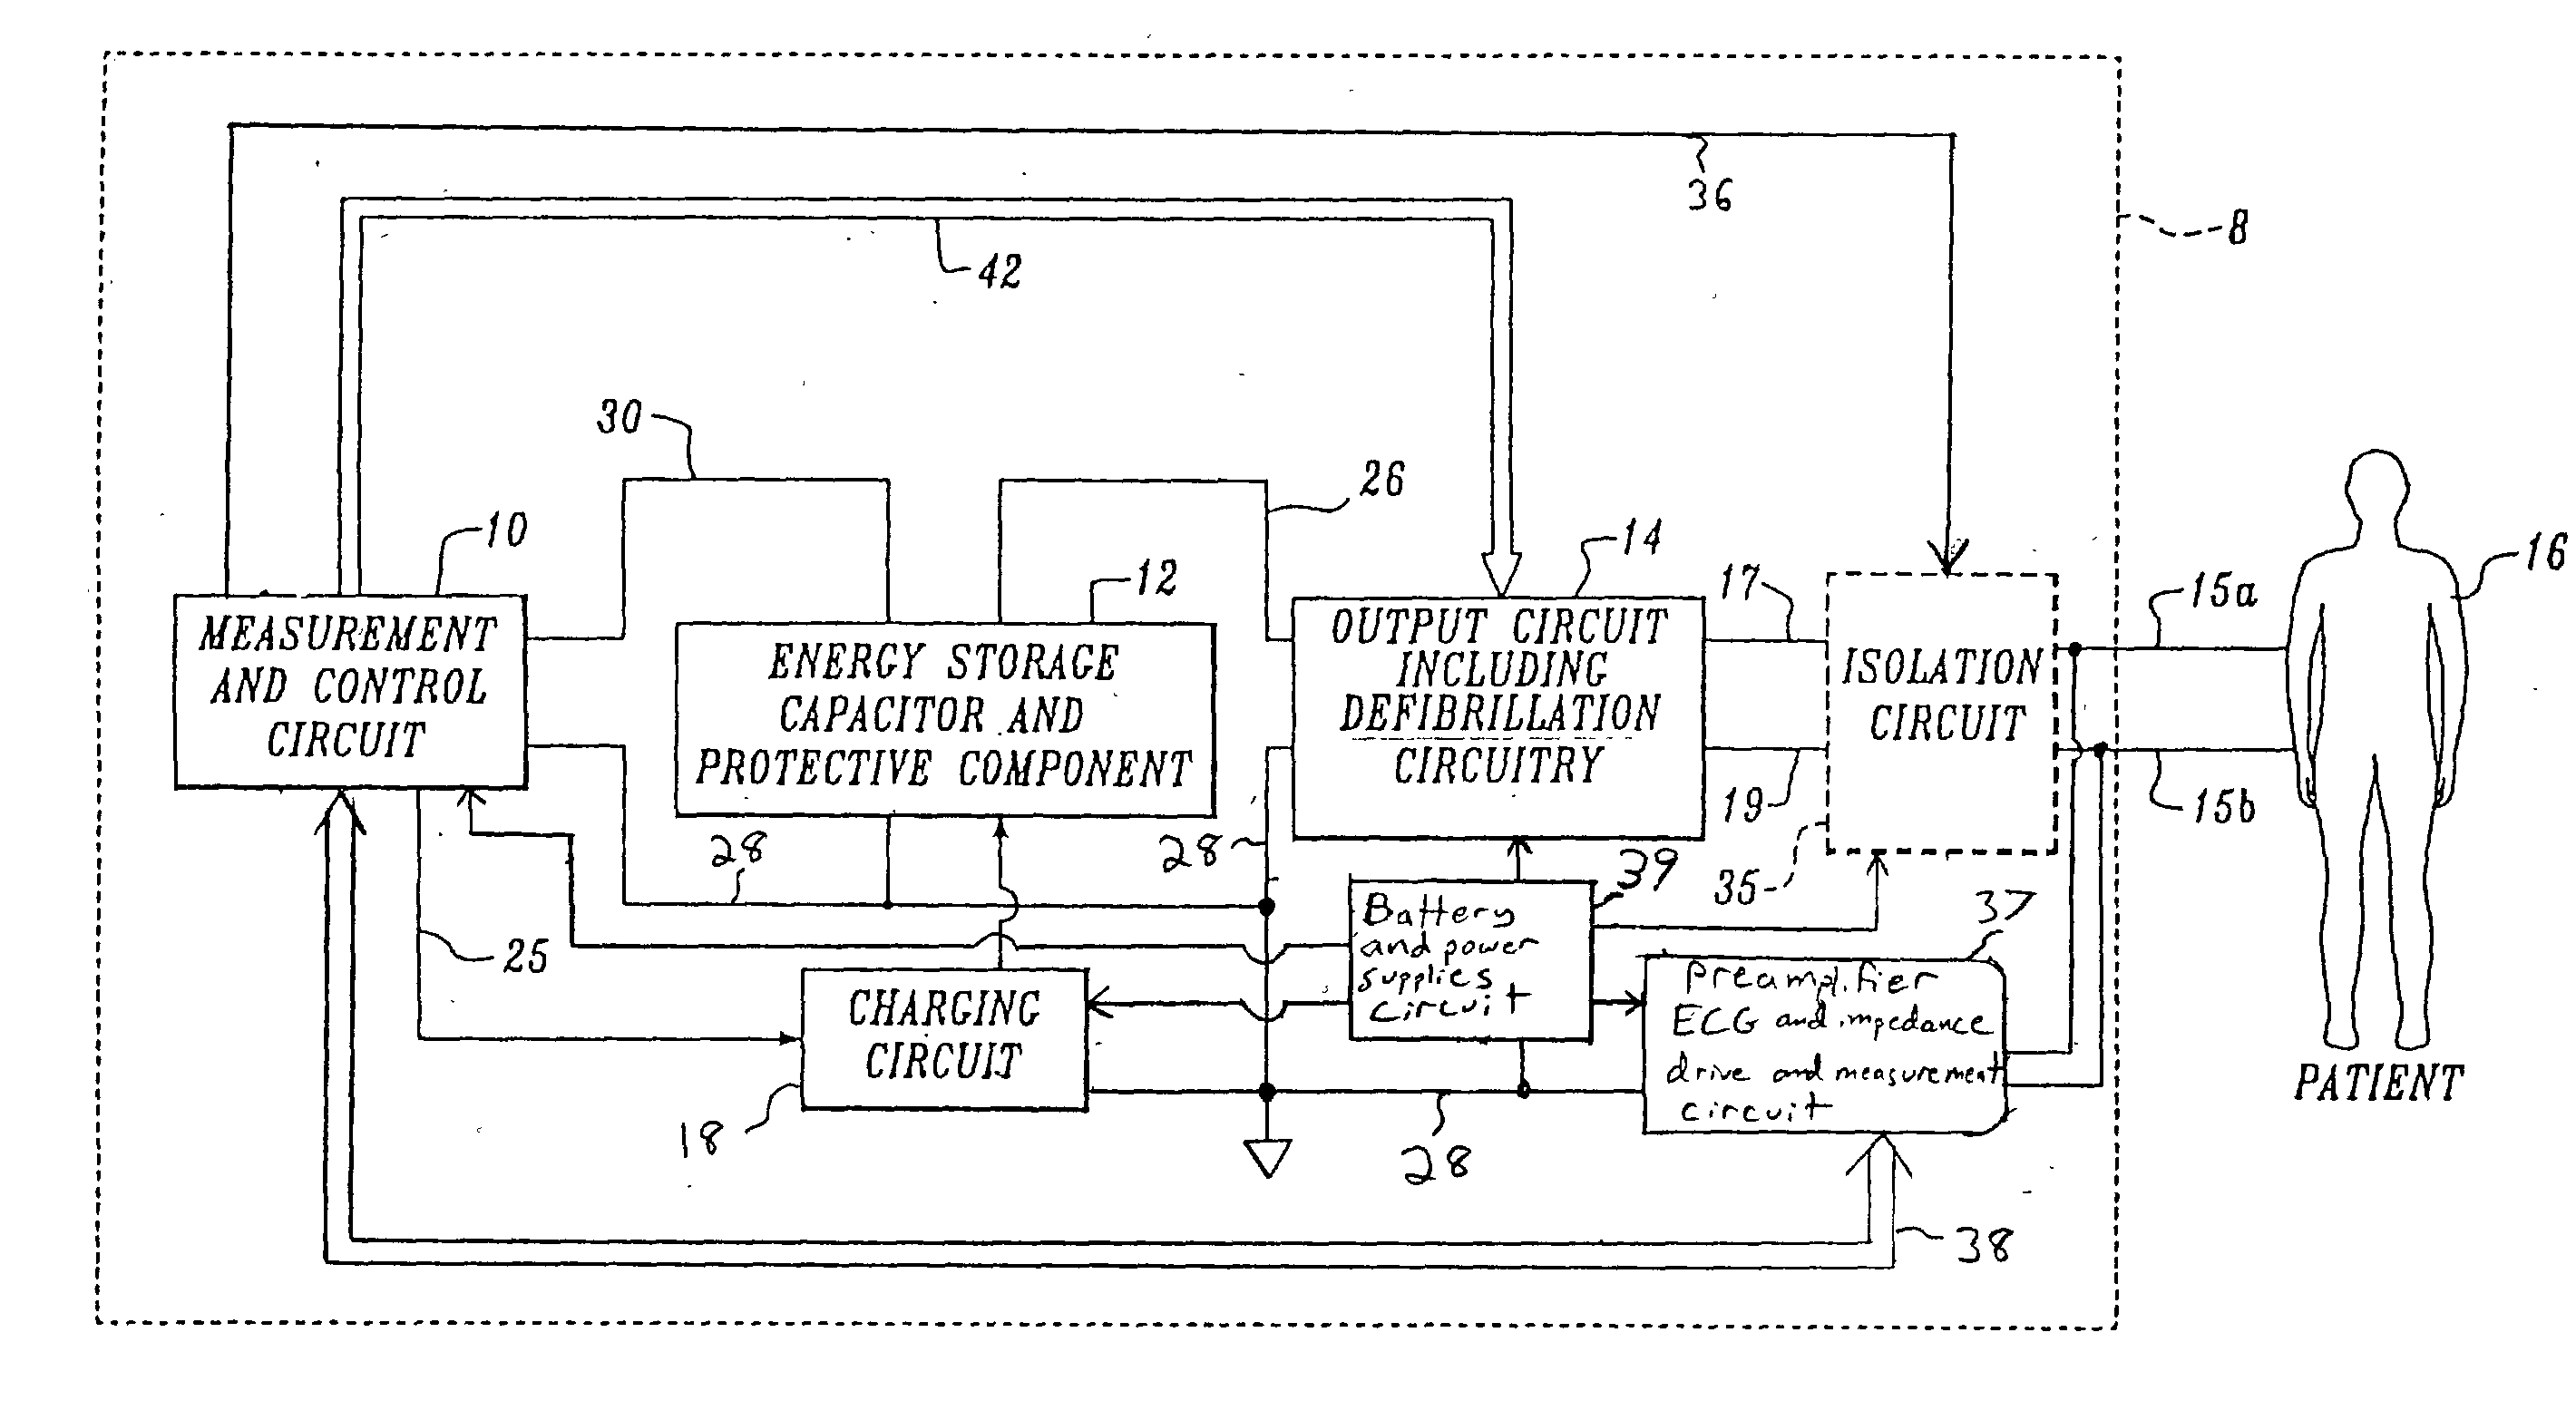 Patent Us20040044371 Defibrillator With H Bridge Output Circuit Circuits Electronic Filter Topology Image Impedance Drawing